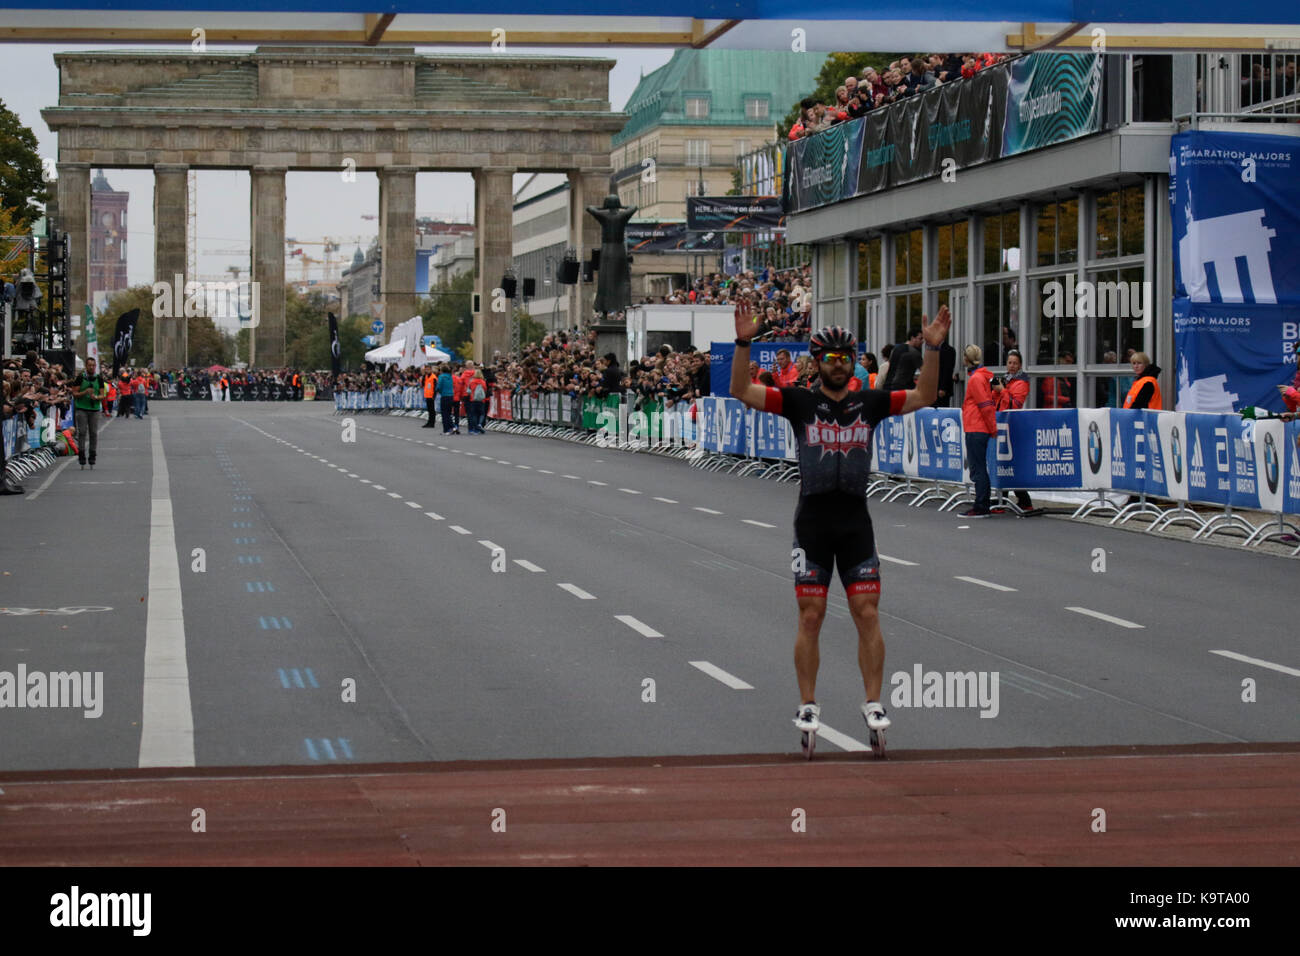 Berlin, Germany. 23rd Sep, 2017. Second place Patxi Peula from Spain crosses the finishing line. Over 5,500 skater took part in the 2017 BMW Berlin Marathon Inline skating race, a day ahead of the Marathon race. Bart Swings from Belgium won the race in 58:42 for the 5th year in a row. Credit: Michael Debets/Pacific Press/Alamy Live News Stock Photo